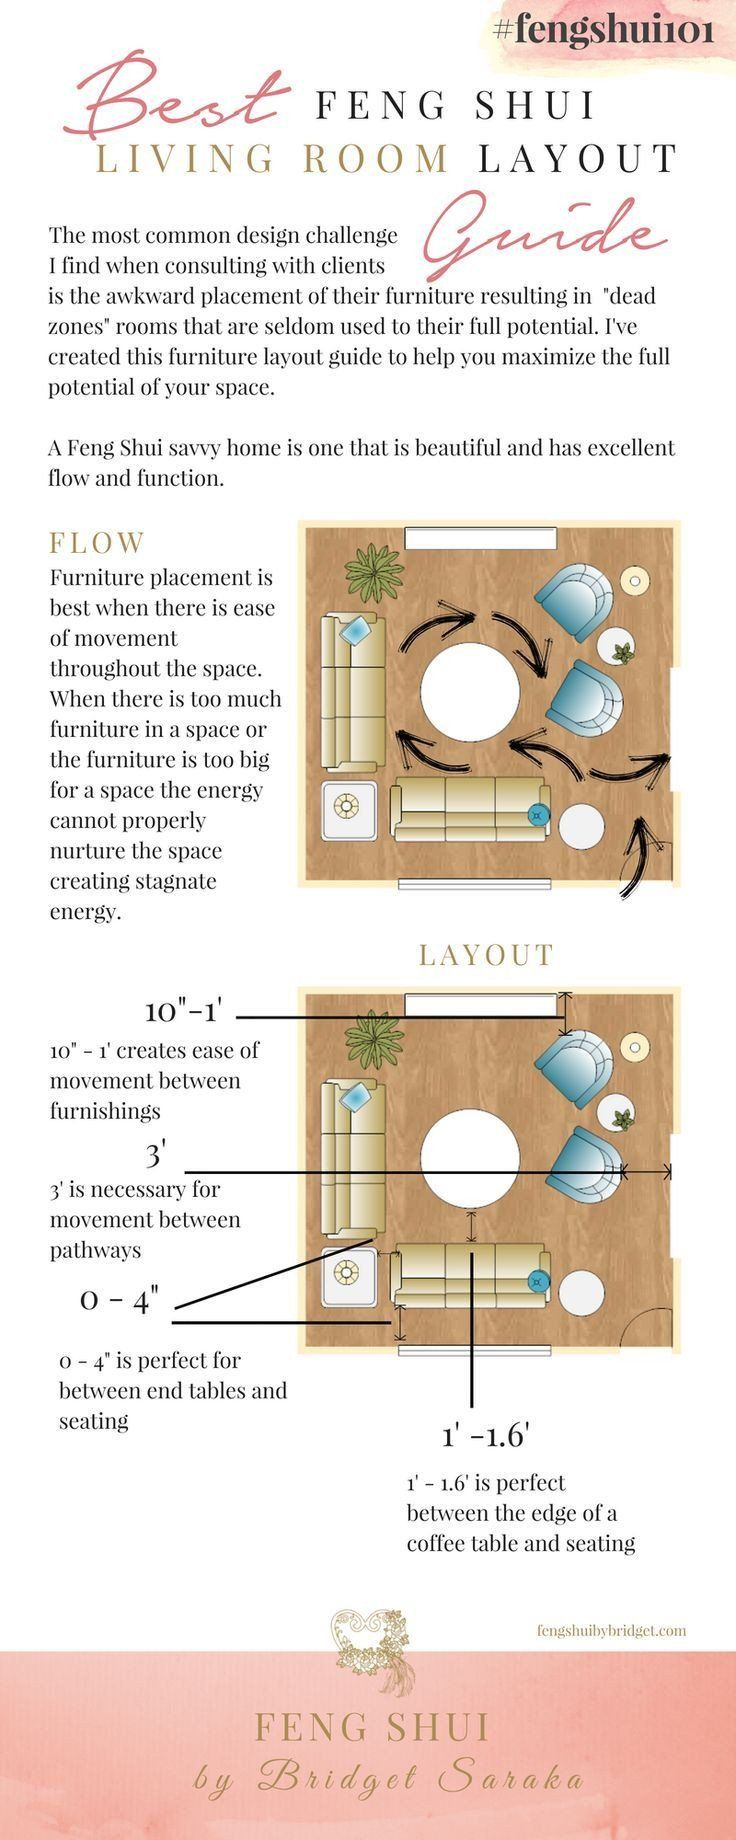 Feng Shui Small Living Room Layout In 2020 Feng Shui Living Room Layout Livingroom Layout Feng Shui Small Living Room